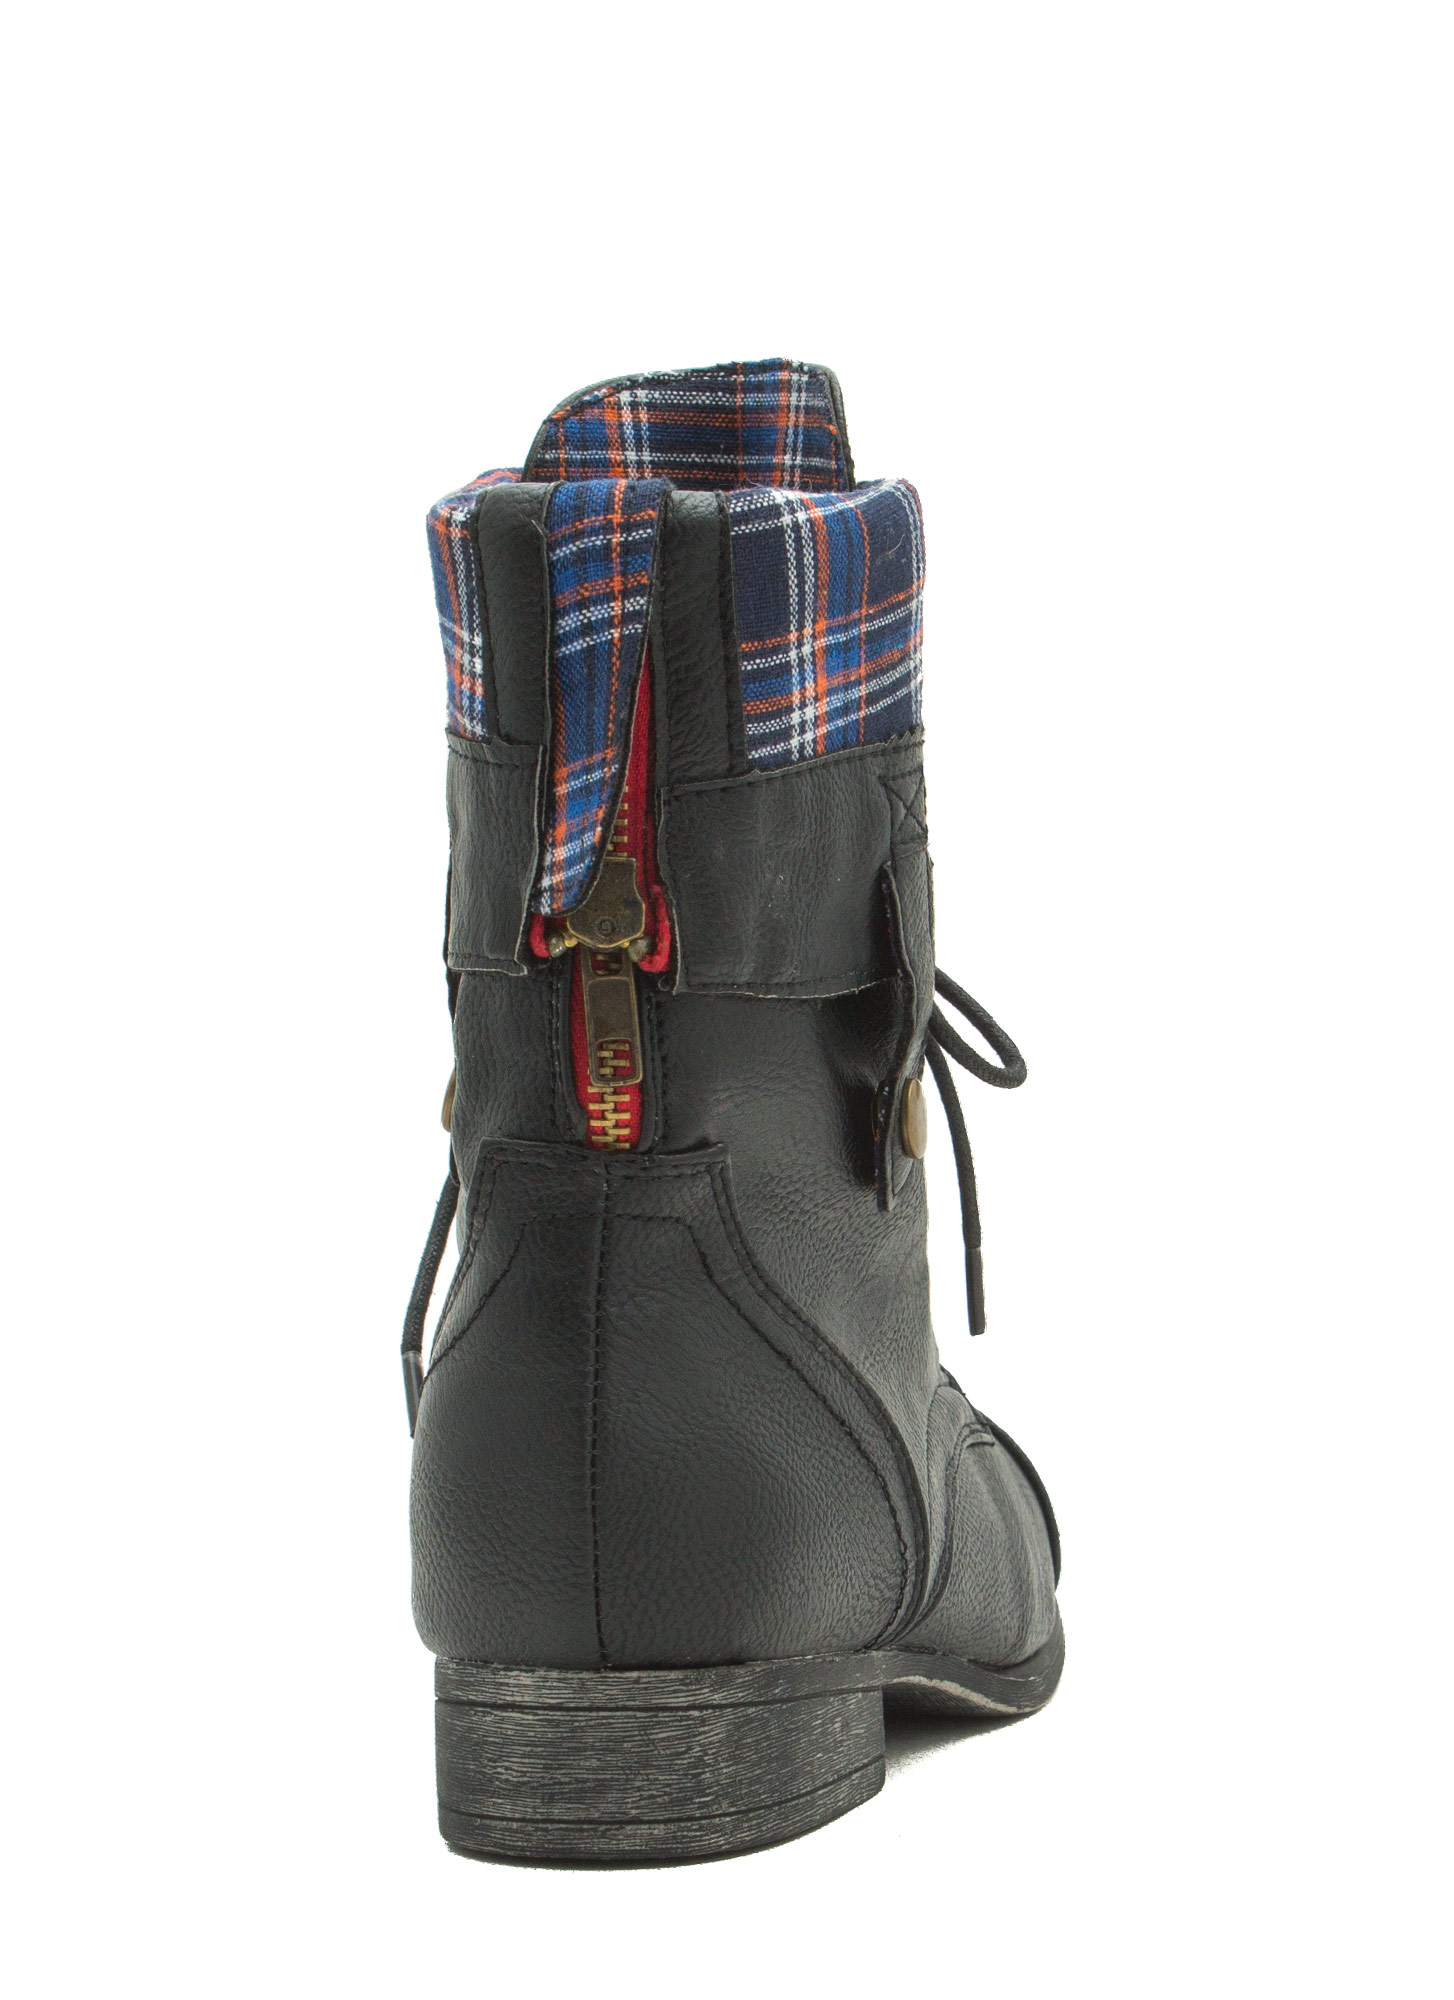 Foldover Lace-Up Combat Boots BLACKBLUE